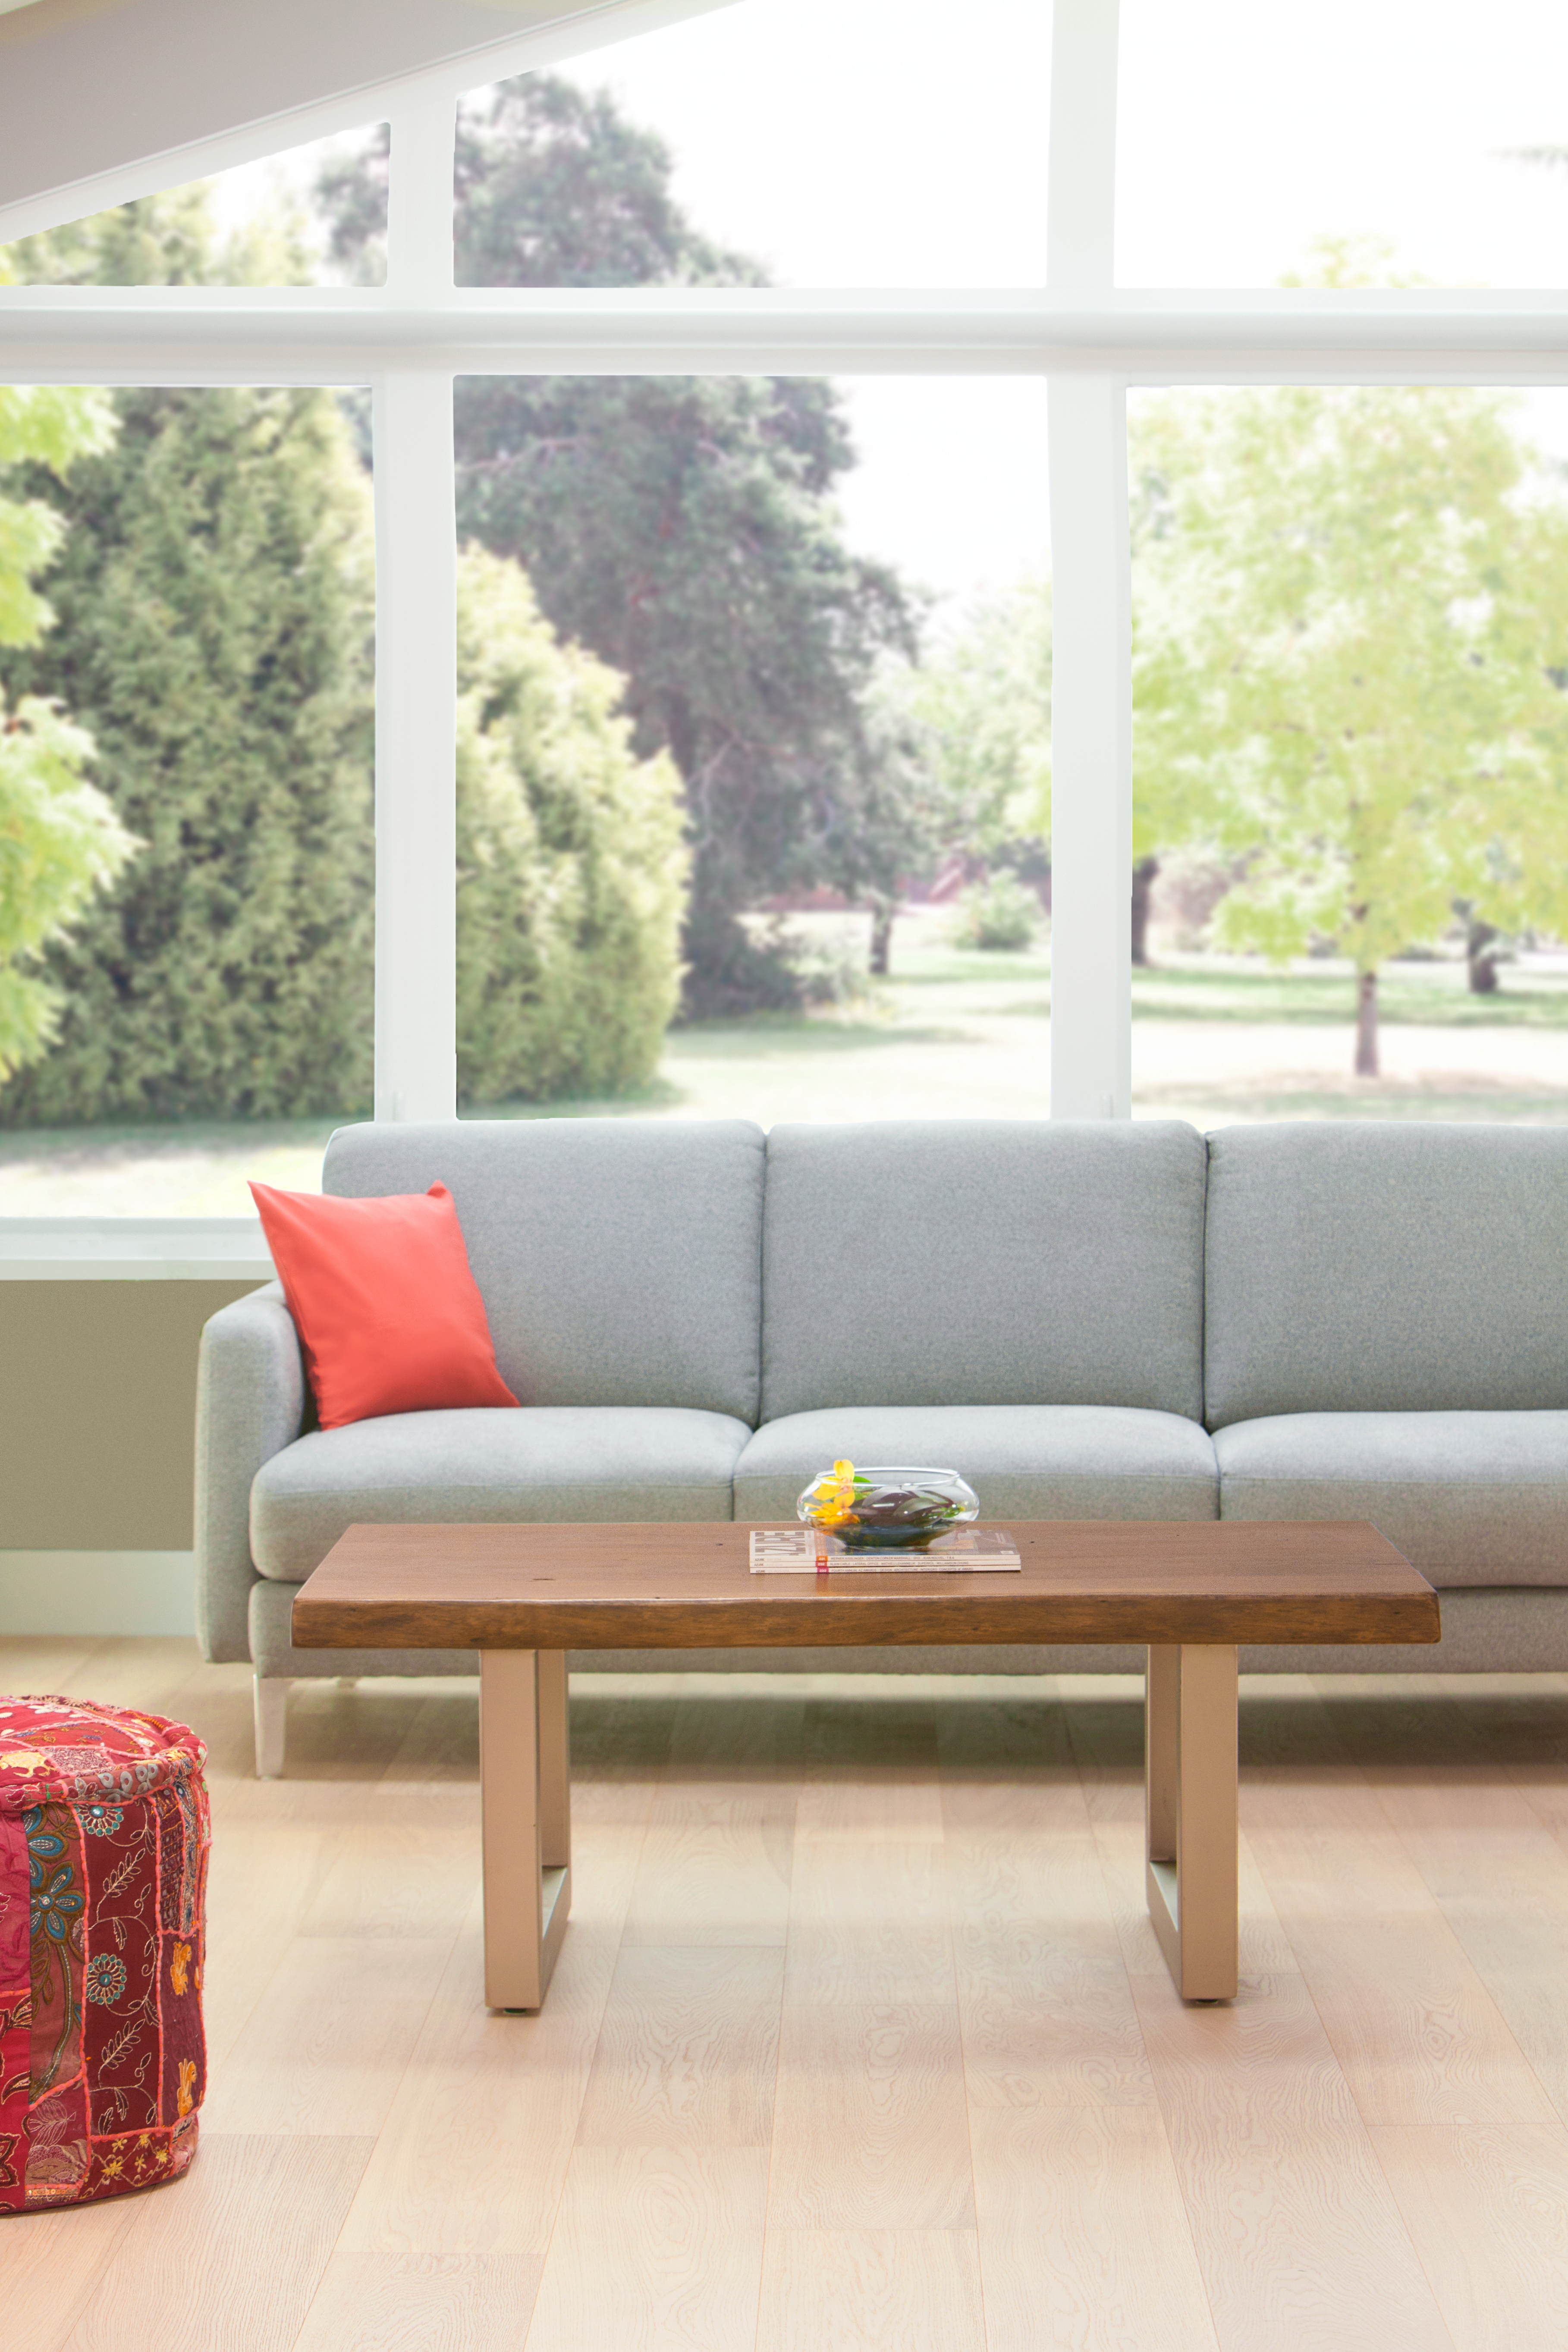 Why Buy Solid Wood Furniture?